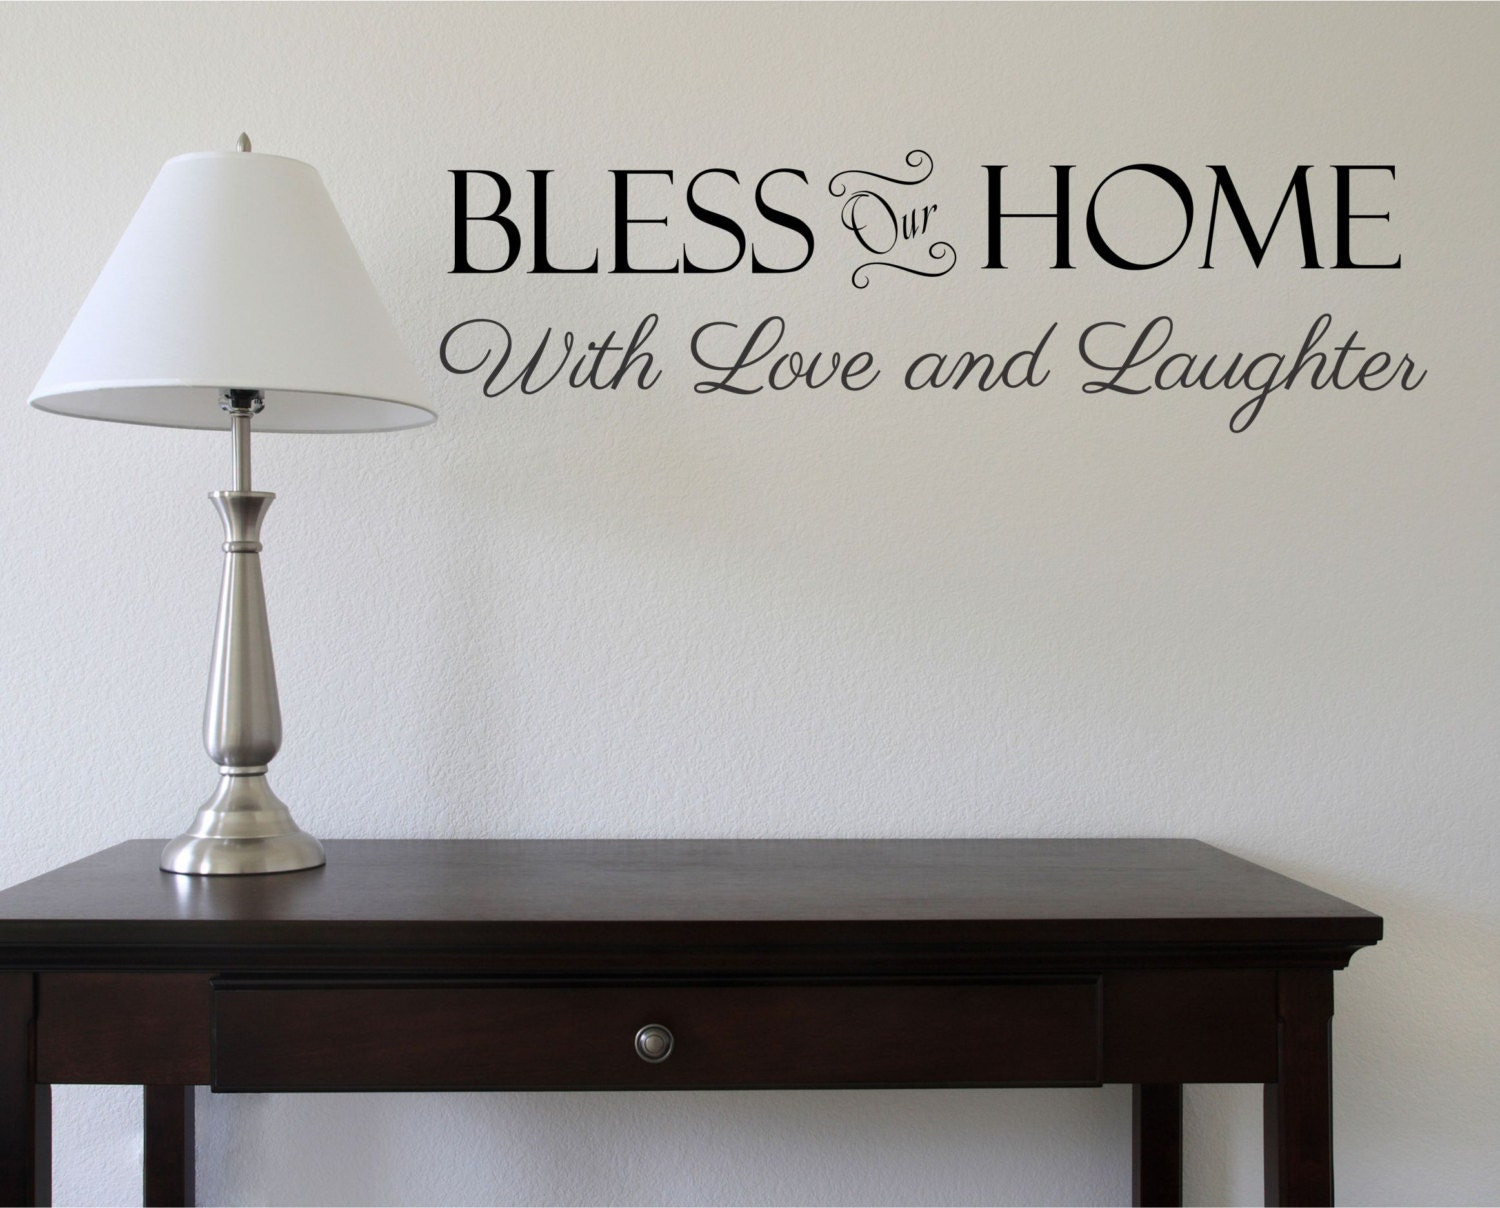 bless our home family wall decal christian decals by decordesigns. Black Bedroom Furniture Sets. Home Design Ideas